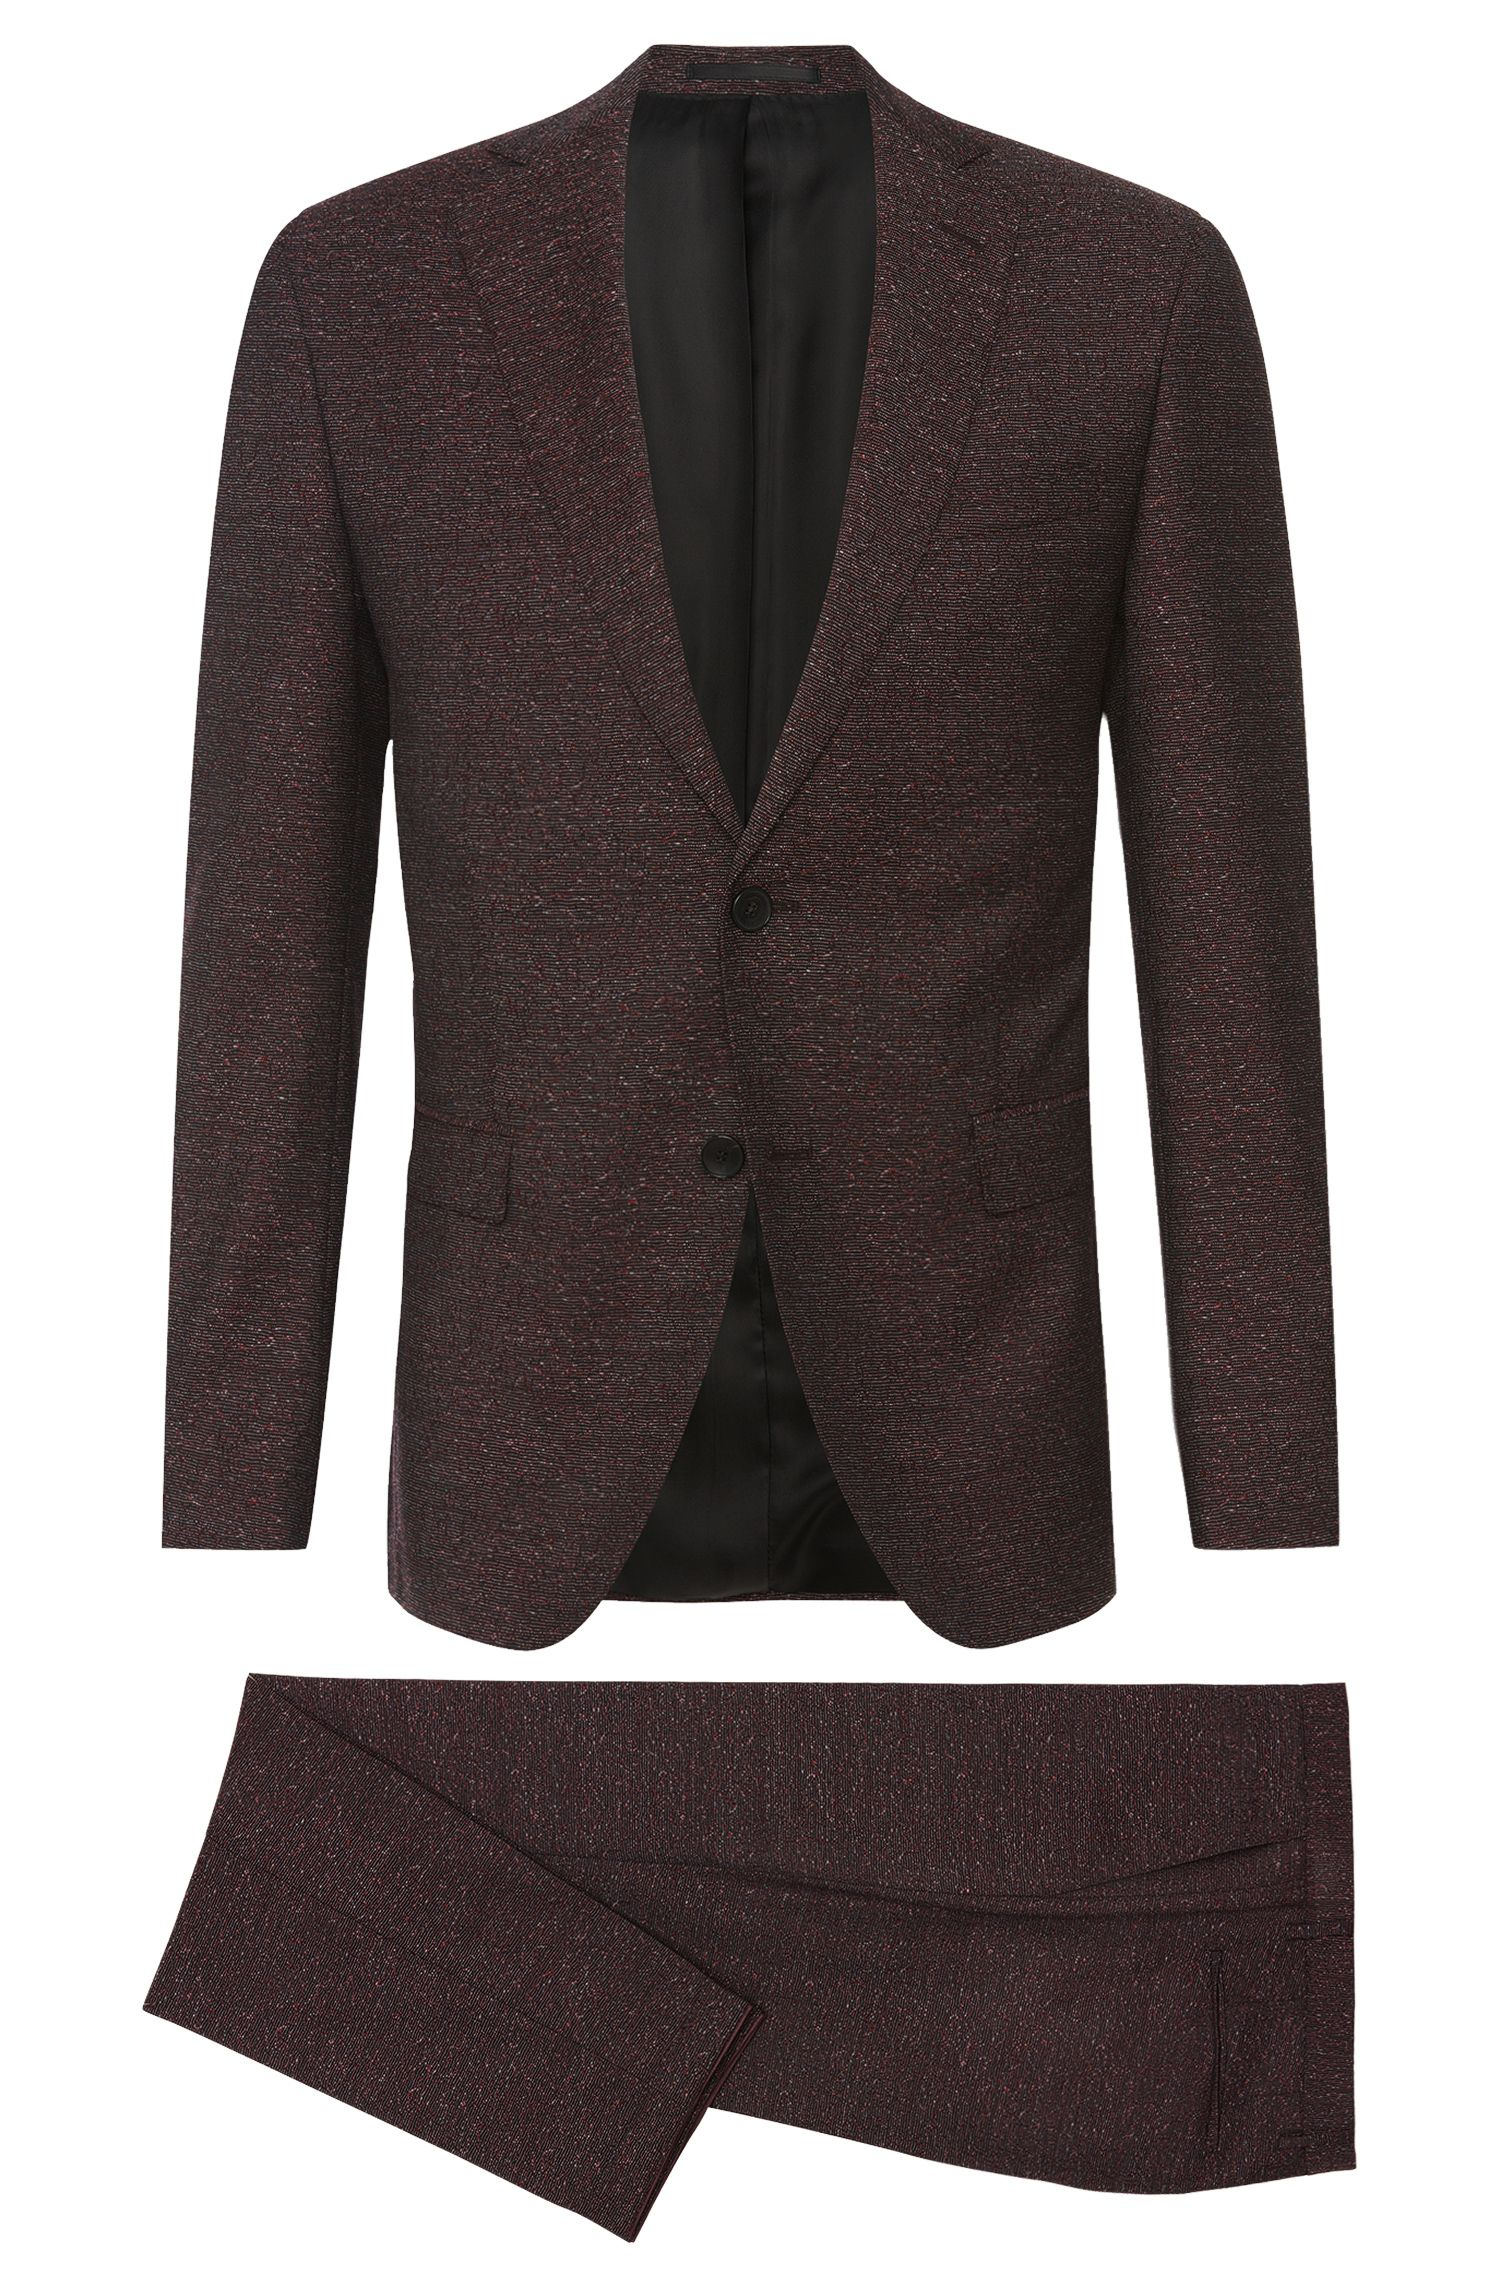 'Reyno/Wave' | Extra Slim Fit, Italian Virgin Wool Melange Suit